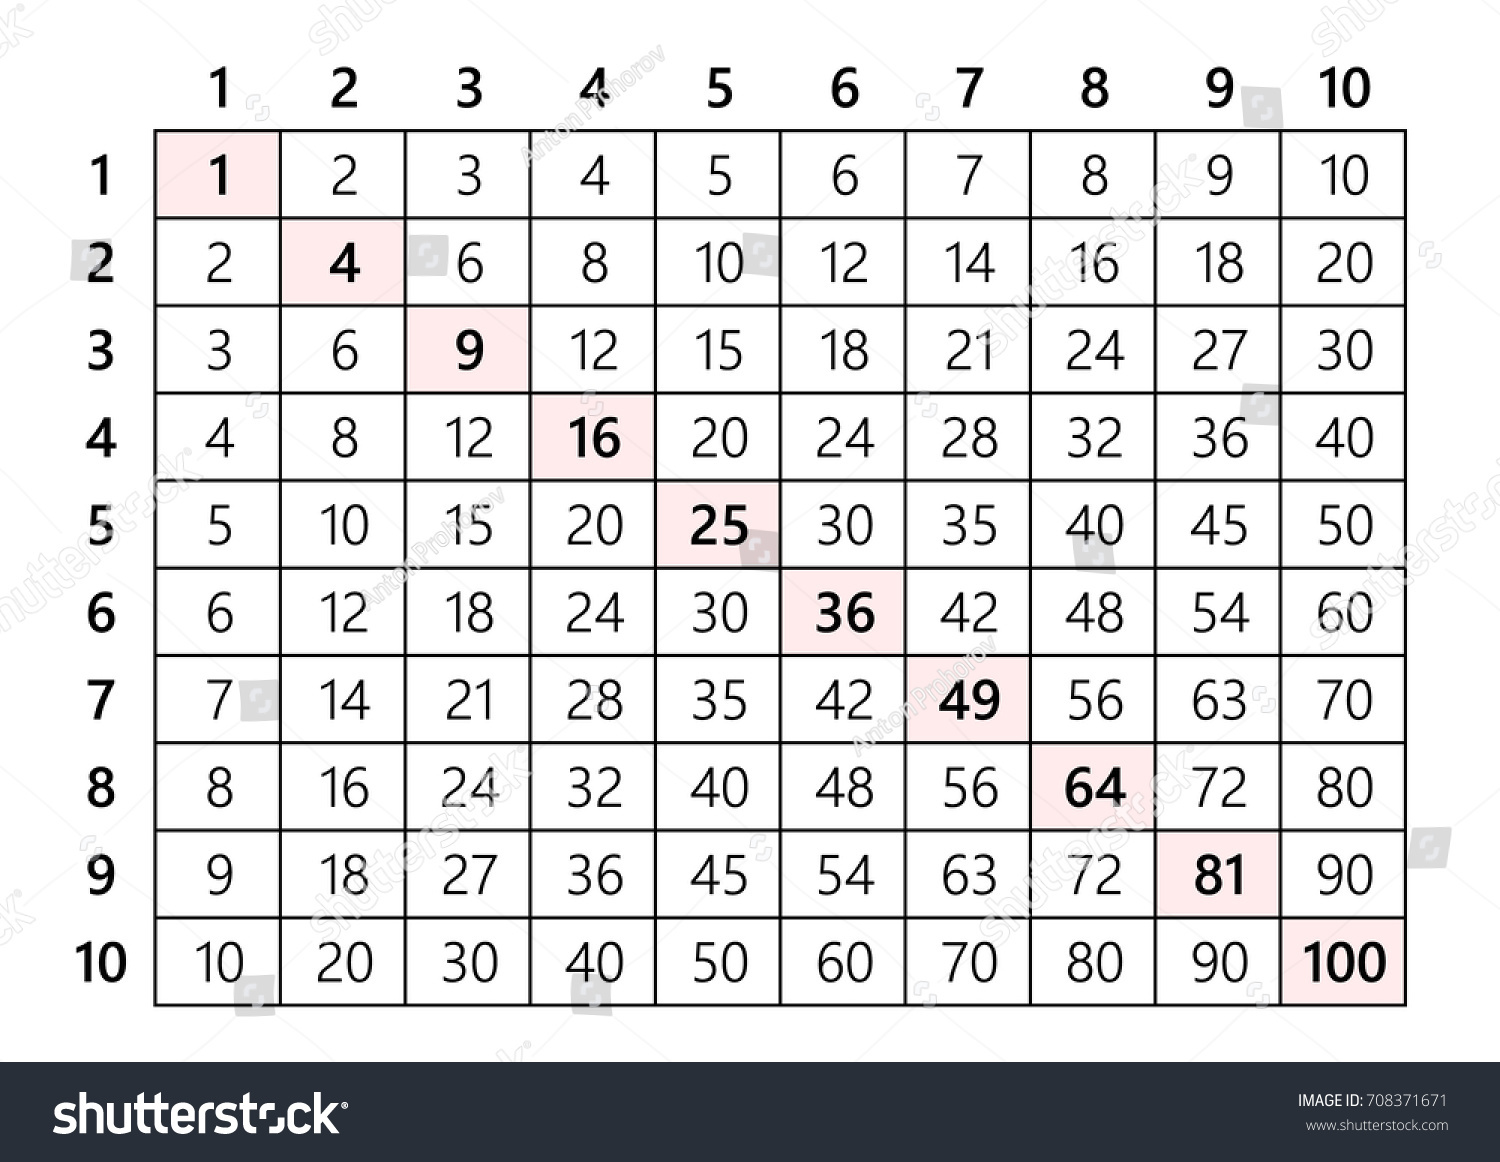 Multiplication table 10x10 stock vector 708371671 shutterstock multiplication table 10x10 gamestrikefo Gallery